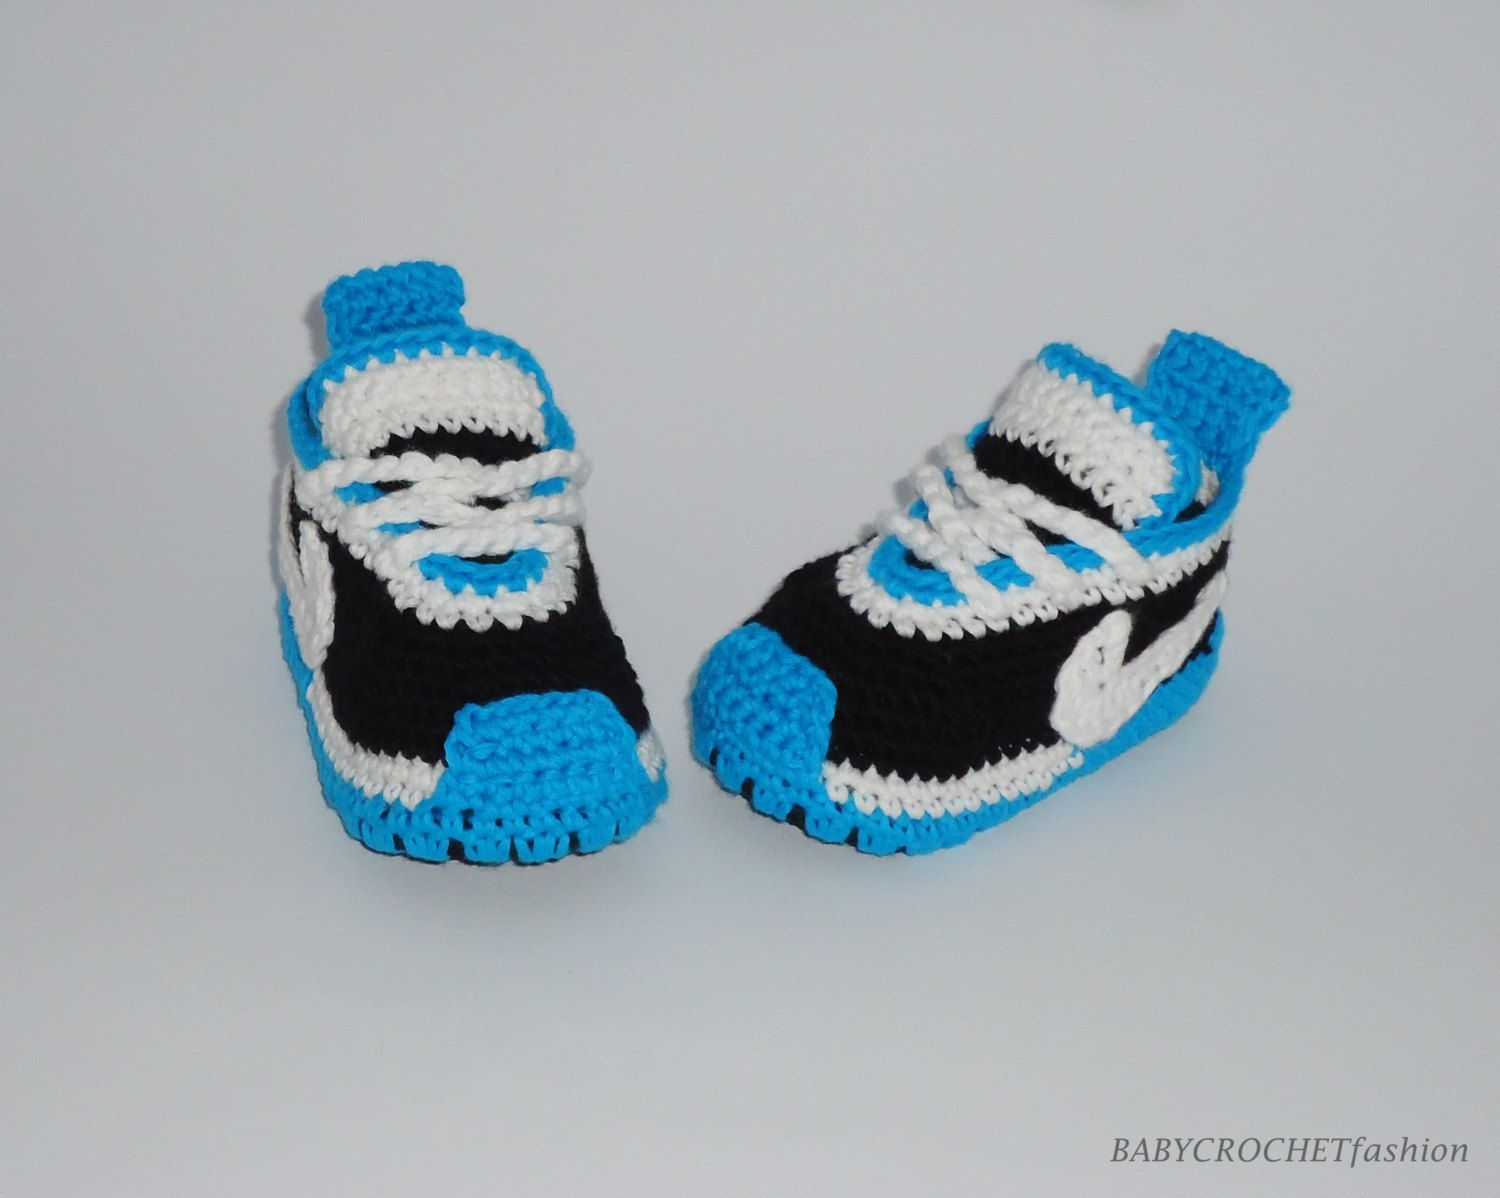 Baby shoes, Knitting, Newborn Baby, Blue Slippers, Boy, Nike Tennis Shoes